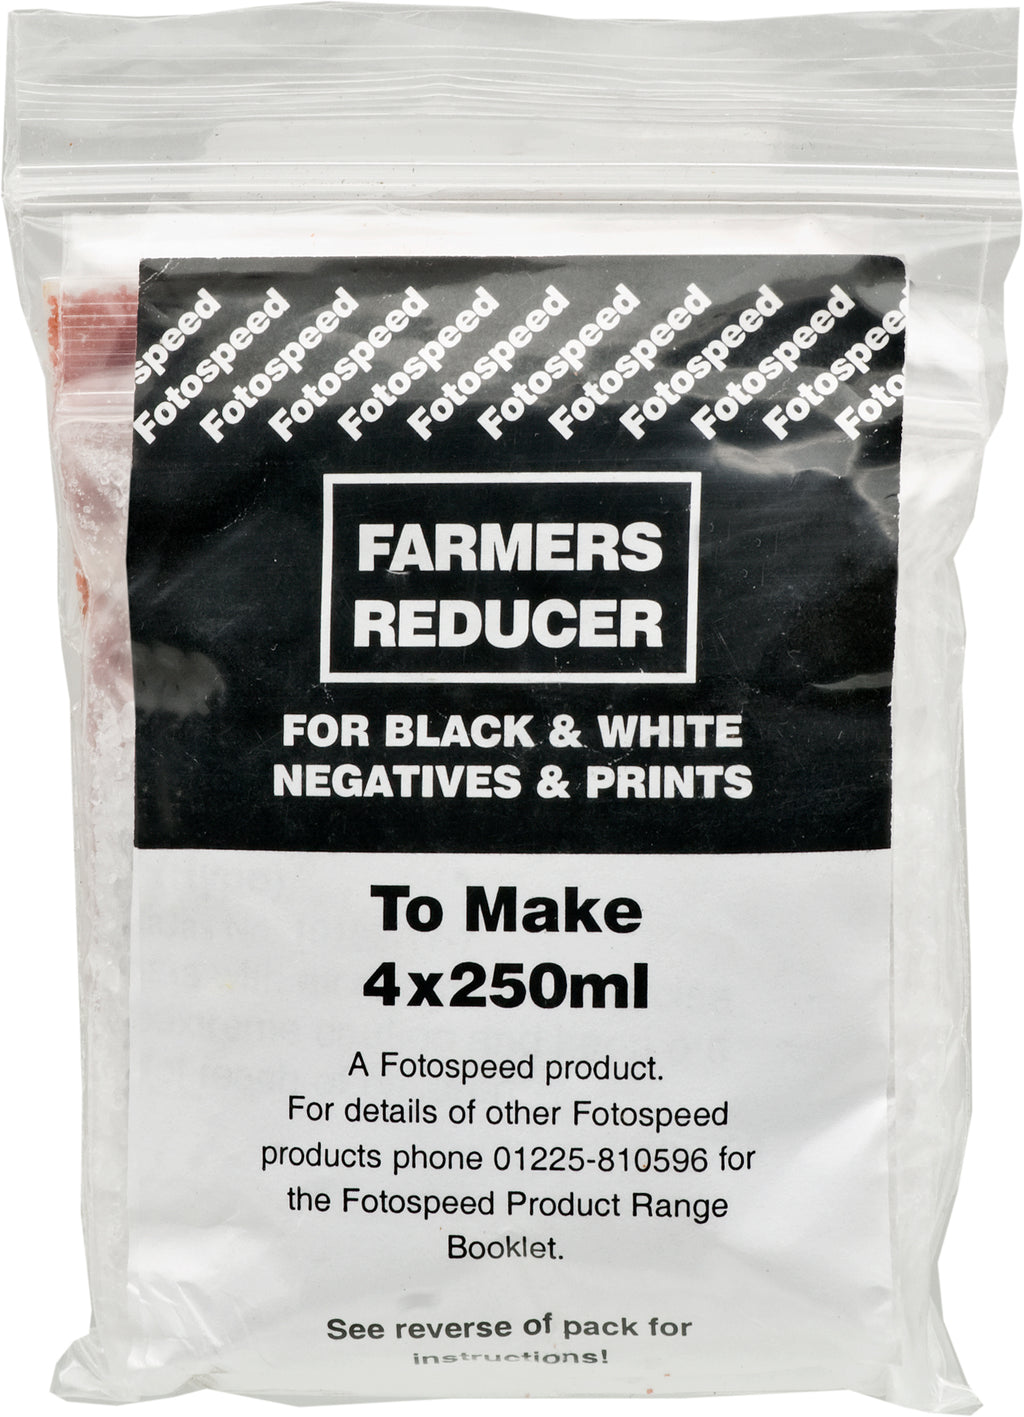 Fotospeed FR10 Farmers Reducer 4 x 250ml